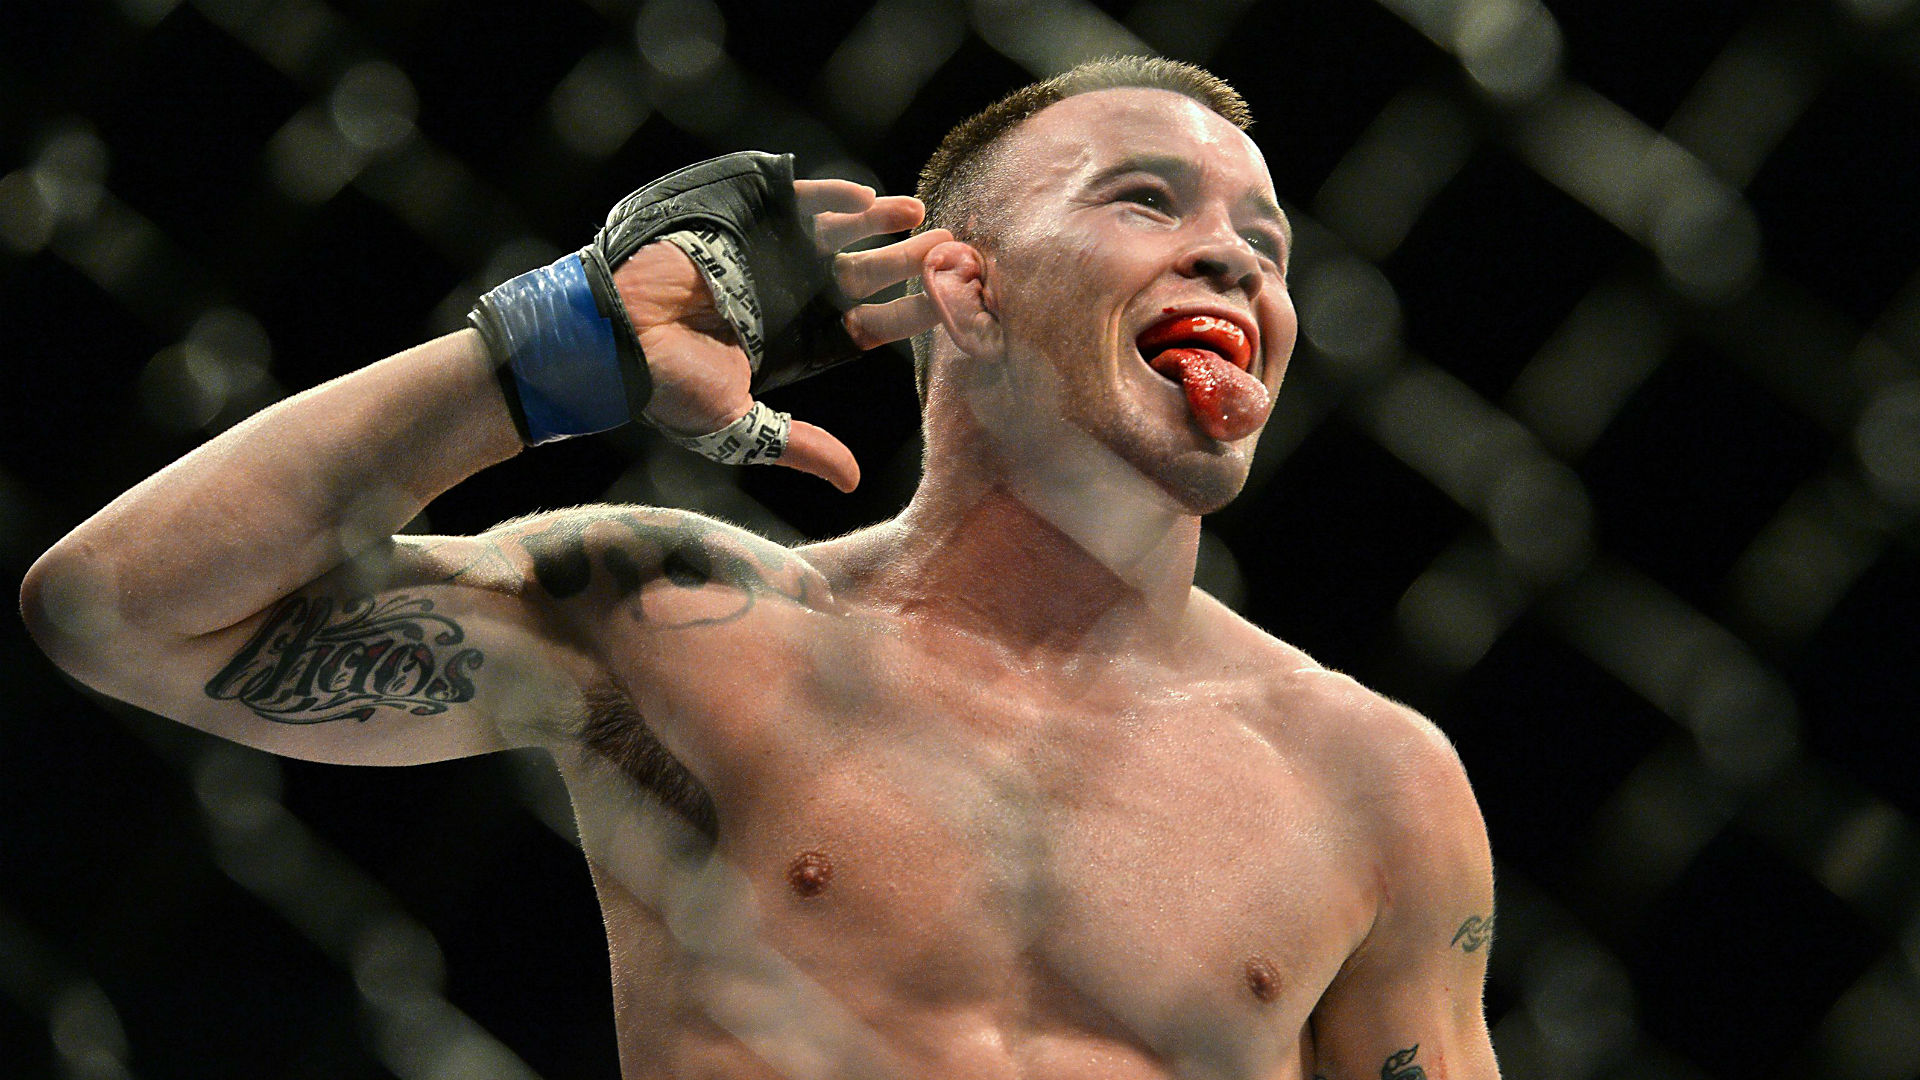 Colby Covington believes Dana White 'absolutely' wants him to lose UFC 245 title fight